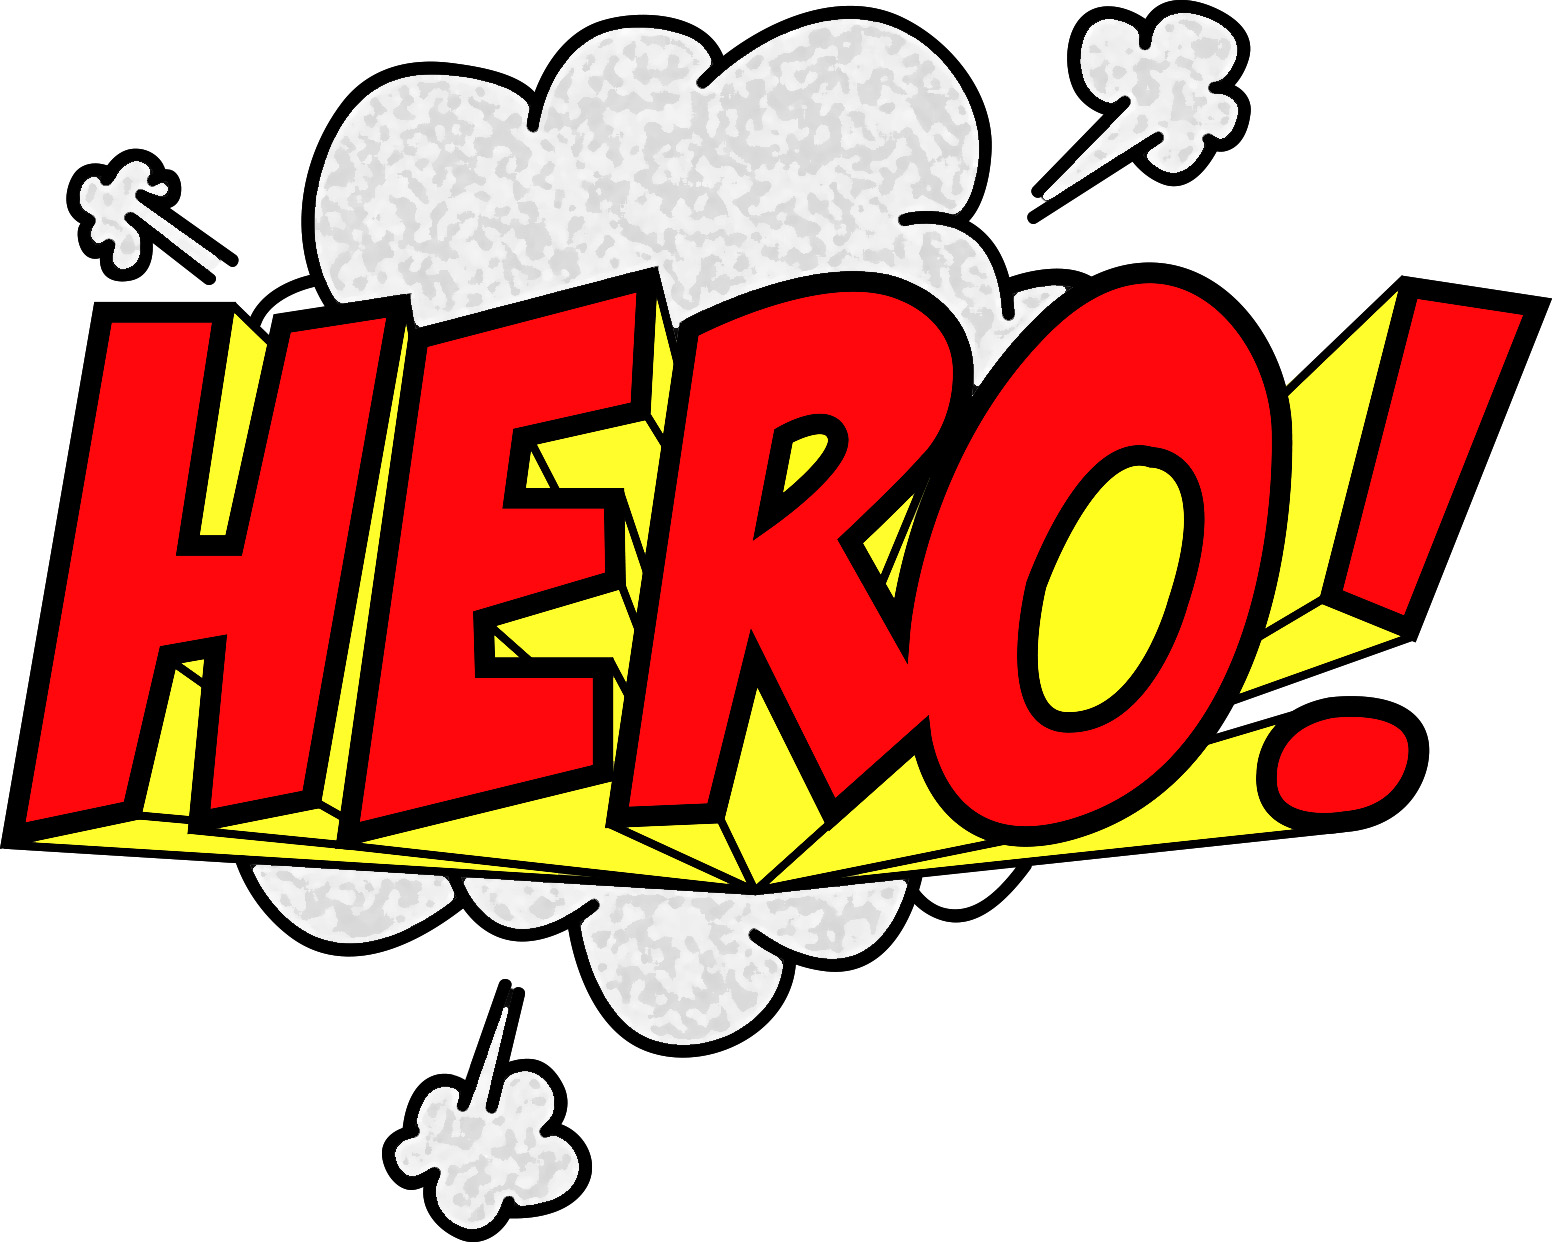 Comic book character clipart clip black and white library Comic book superhero clipart - ClipartFest clip black and white library